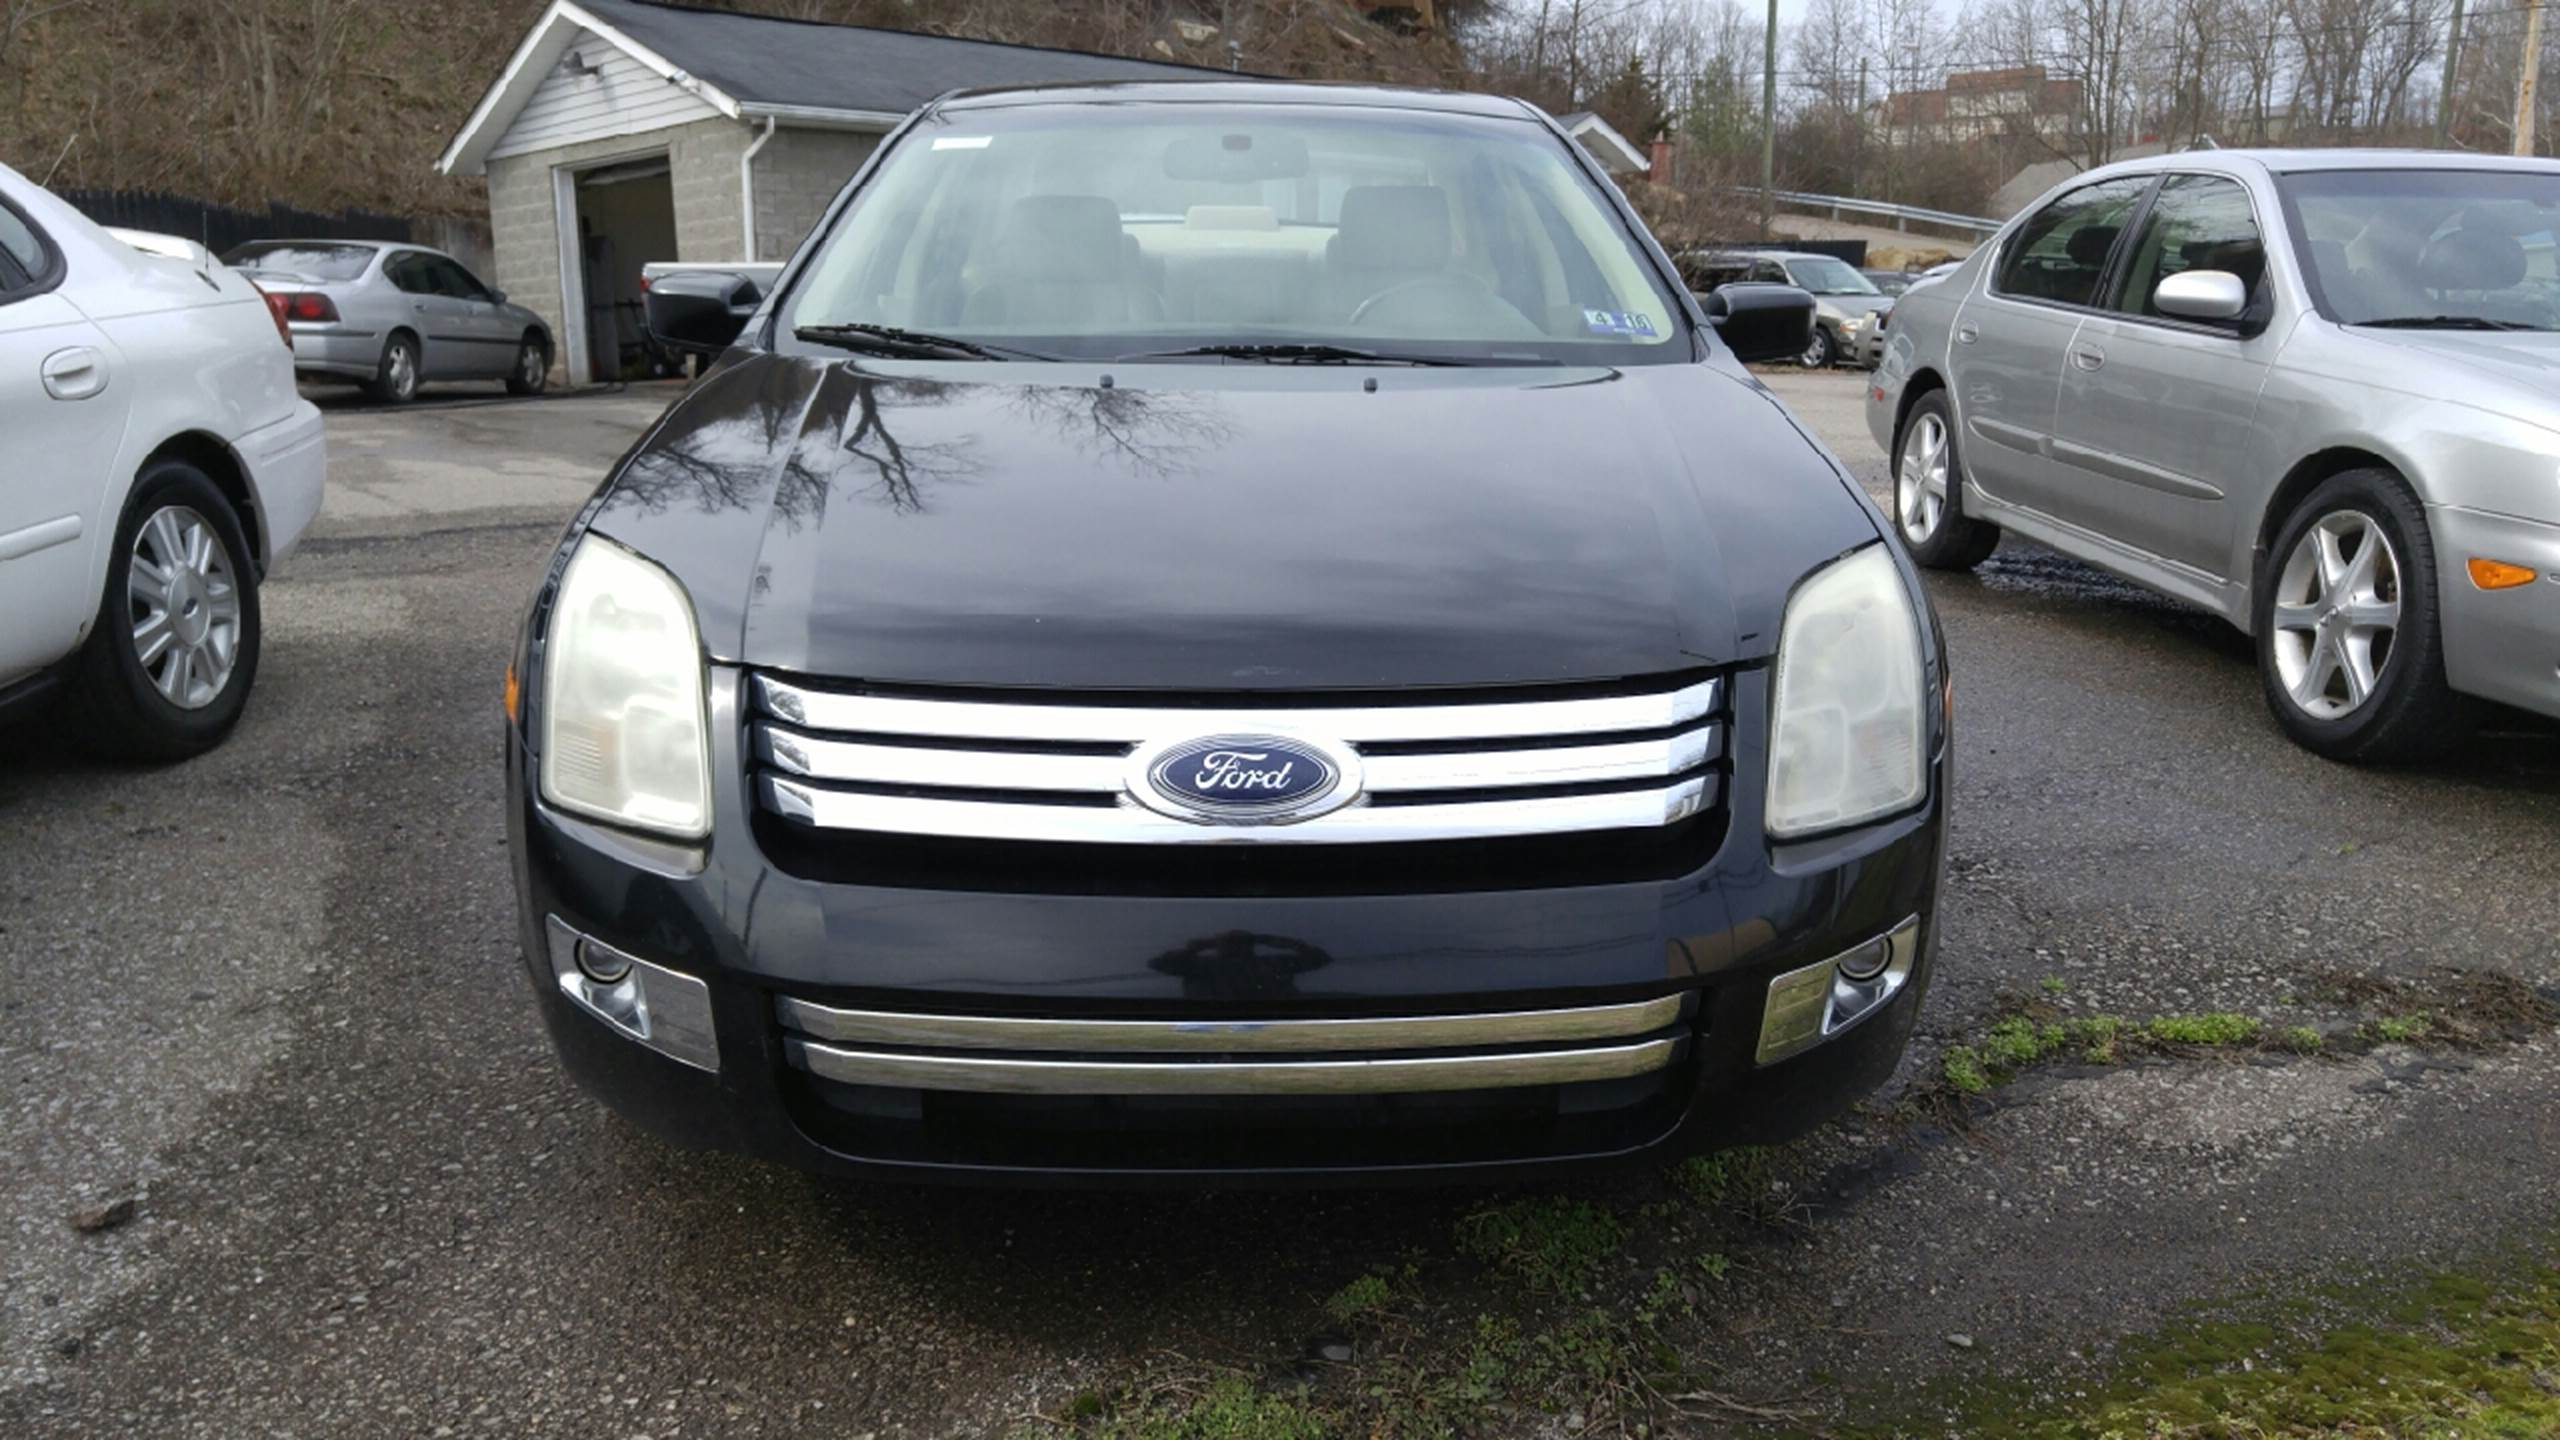 Cars For Sale In Wv: Cars For Sale In Saint Albans, WV